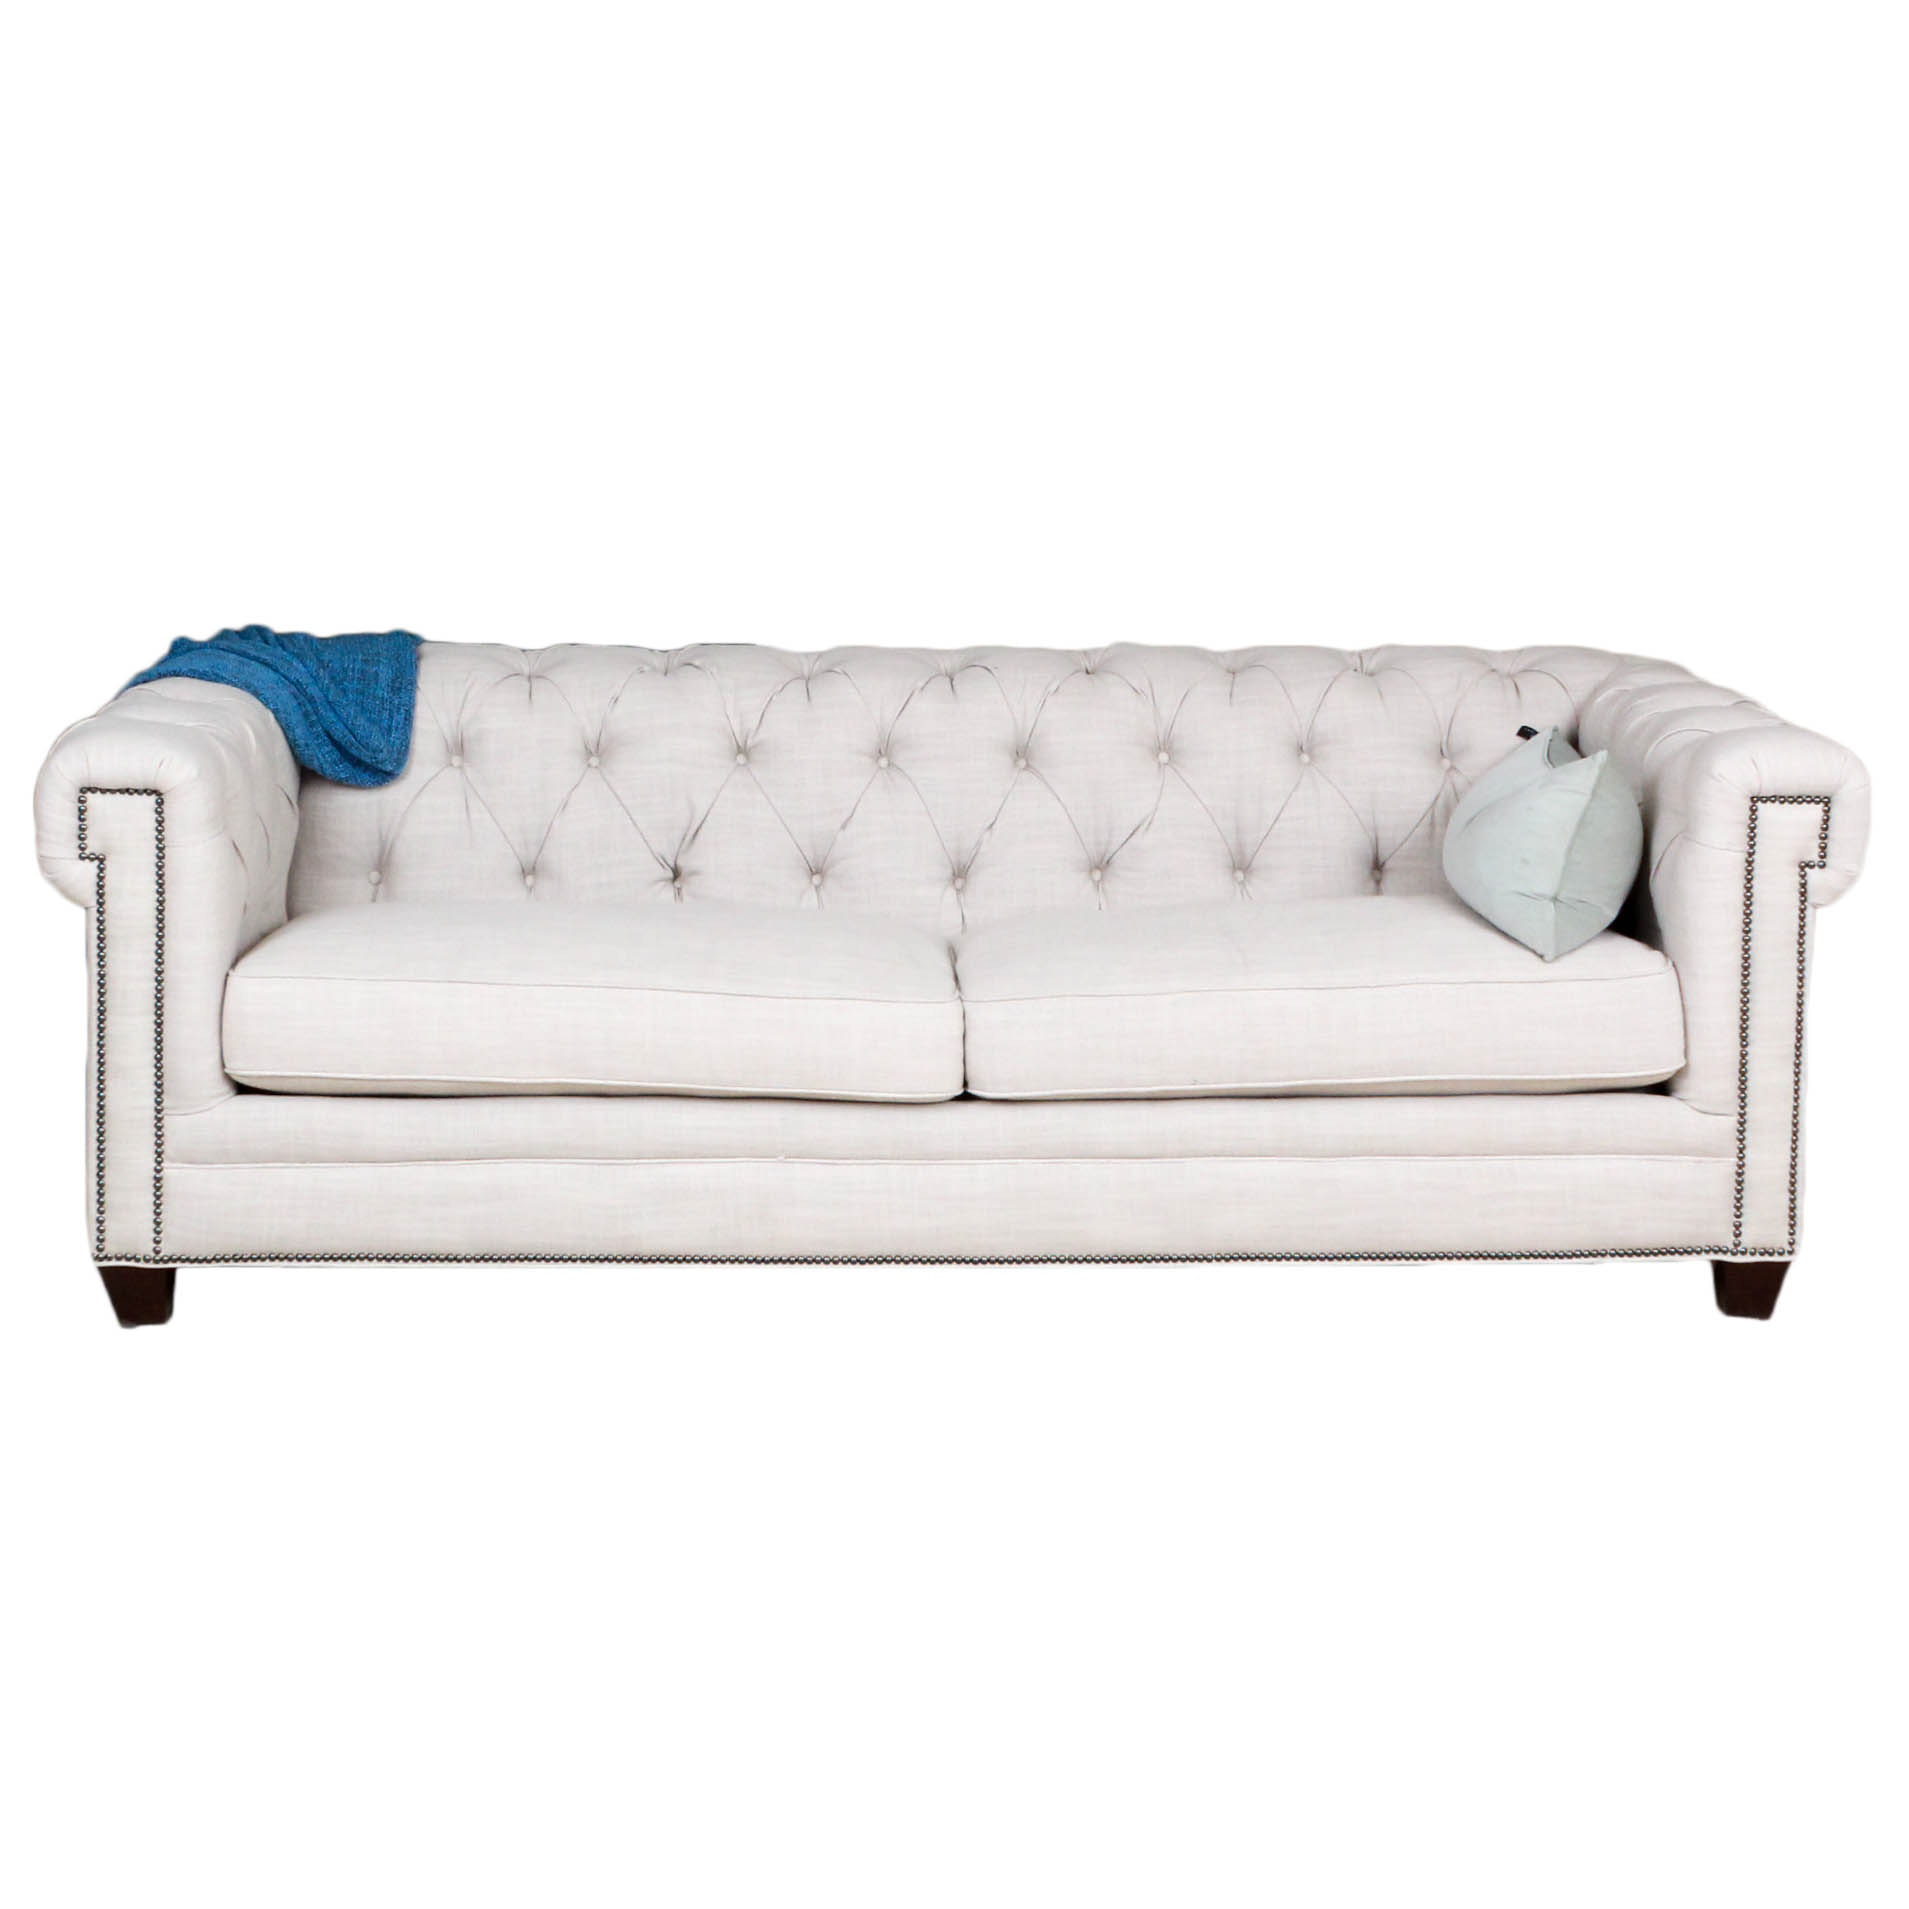 Tufted Sofa by Hooker Furniture